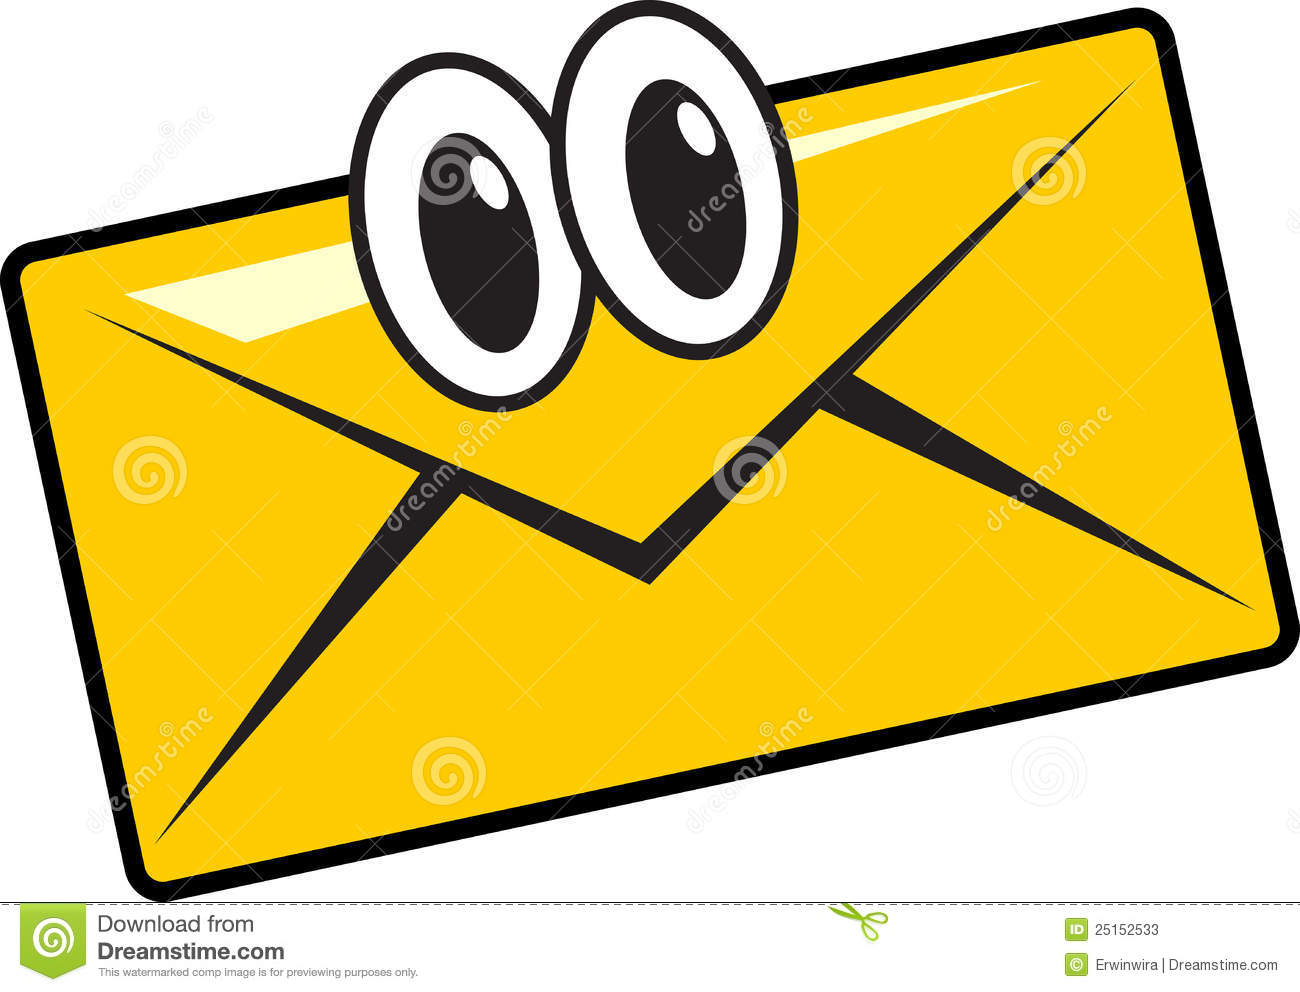 Illustration of funny cartoon mail character smile